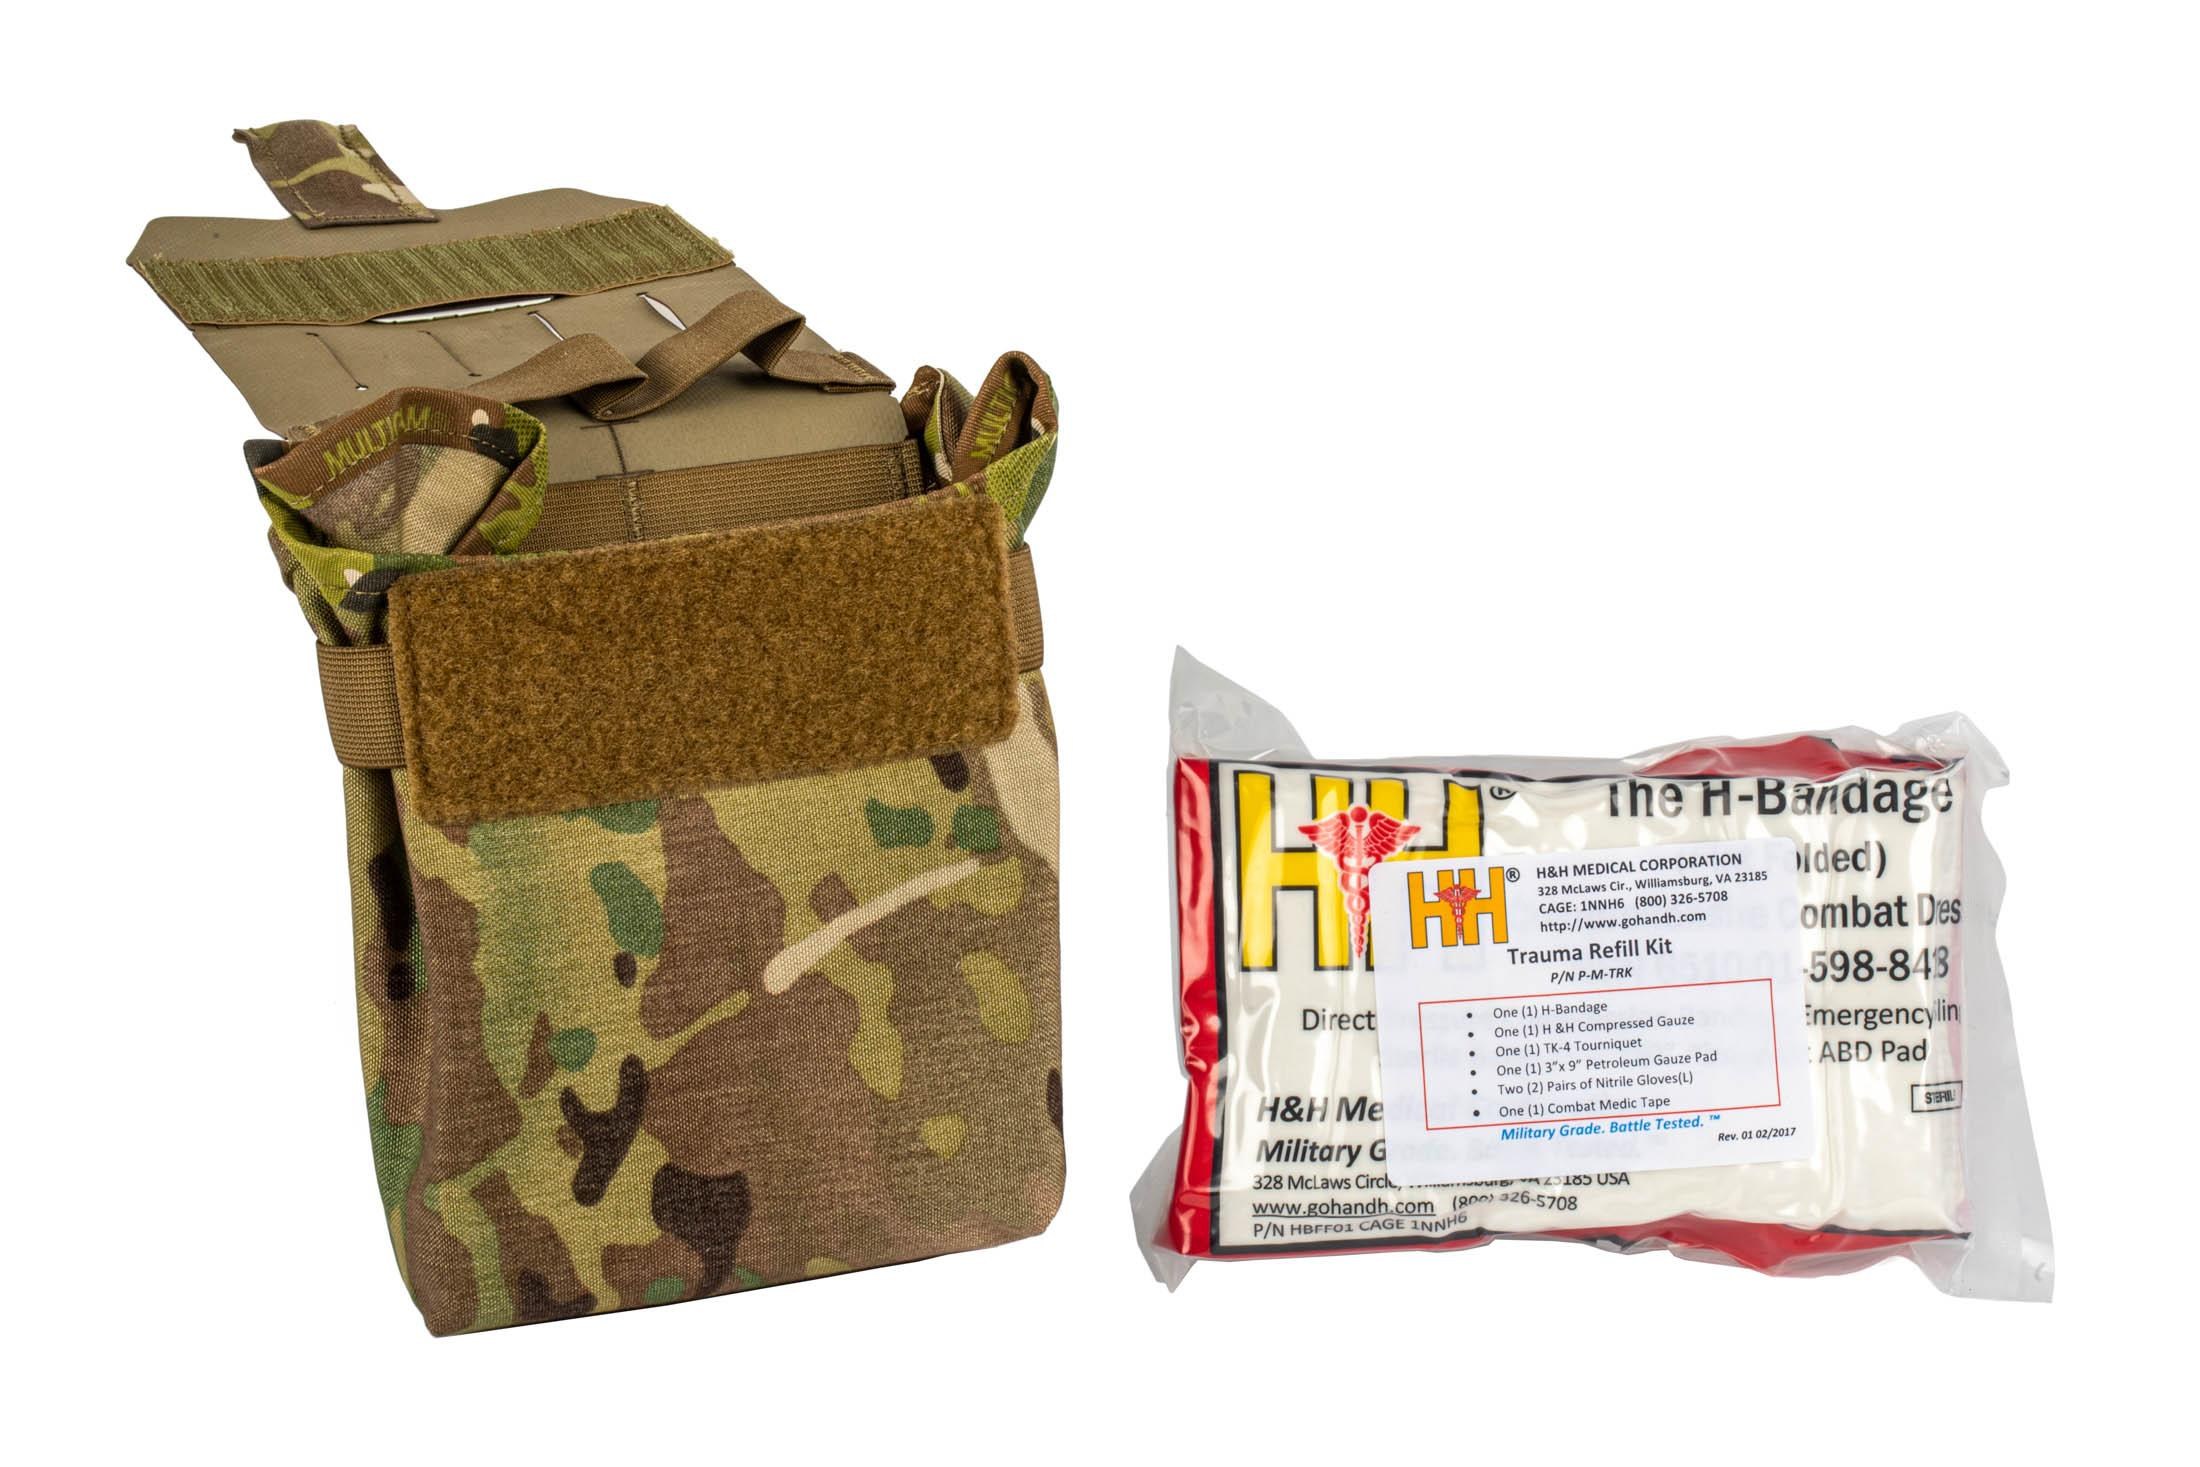 The Blue Force Gear Trauma Kit Now Multicam filled uses the Helium Whisper attachment system